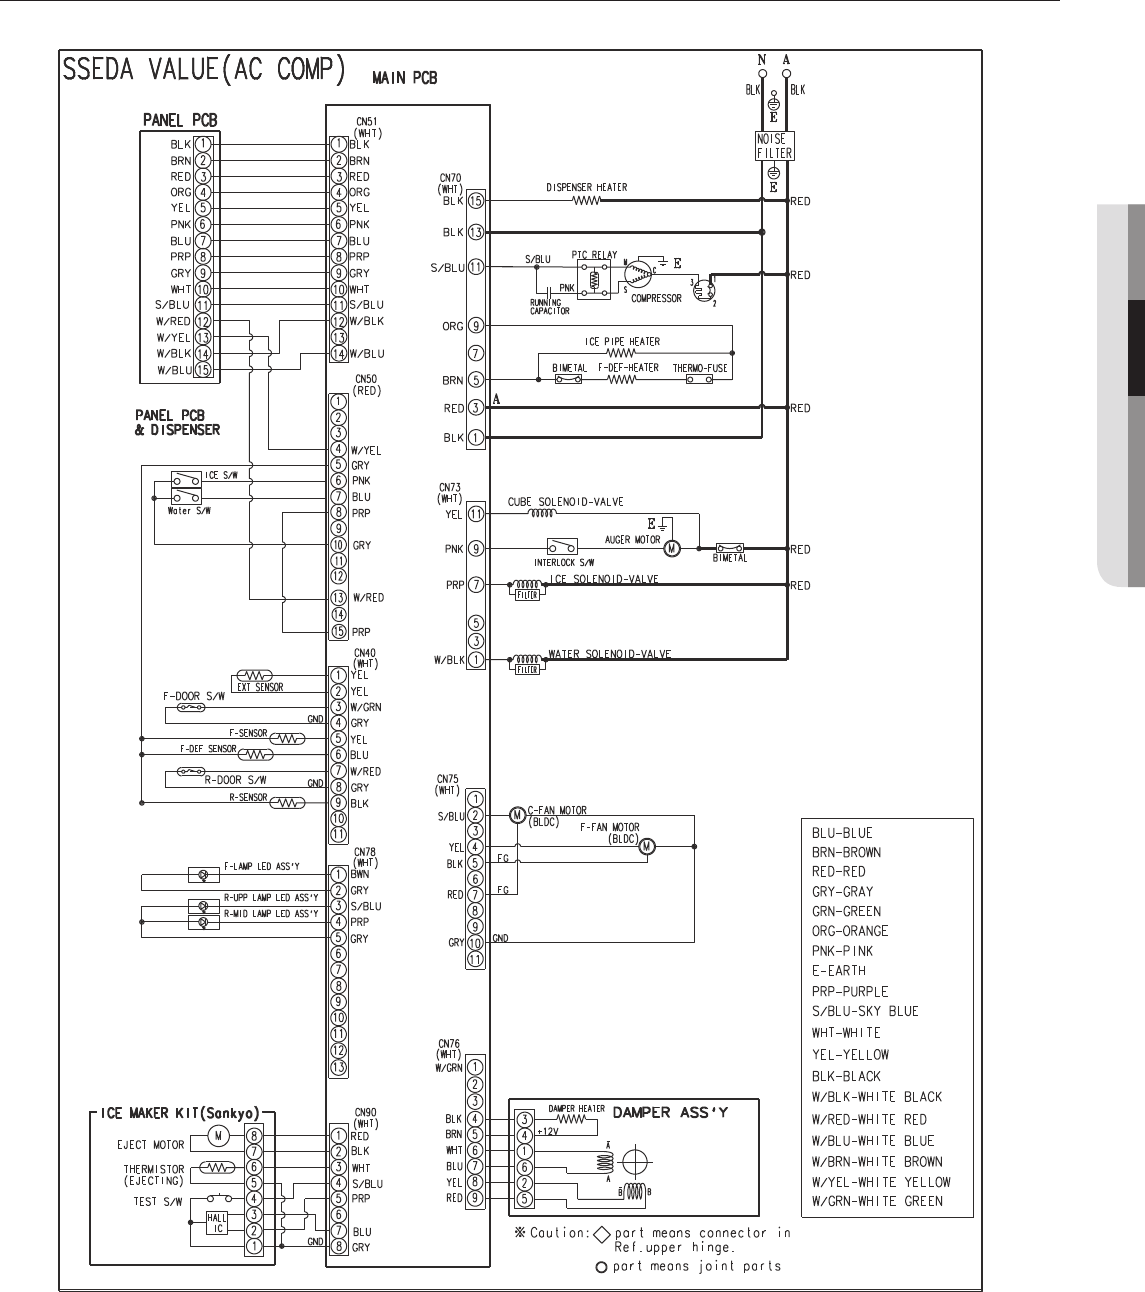 21aa6212 5c03 4539 ac02 99a0885d5c5e bg1f page 31 of samsung refrigerator rs261mdwp user guide wiring diagram for a refrigerator compressor at n-0.co